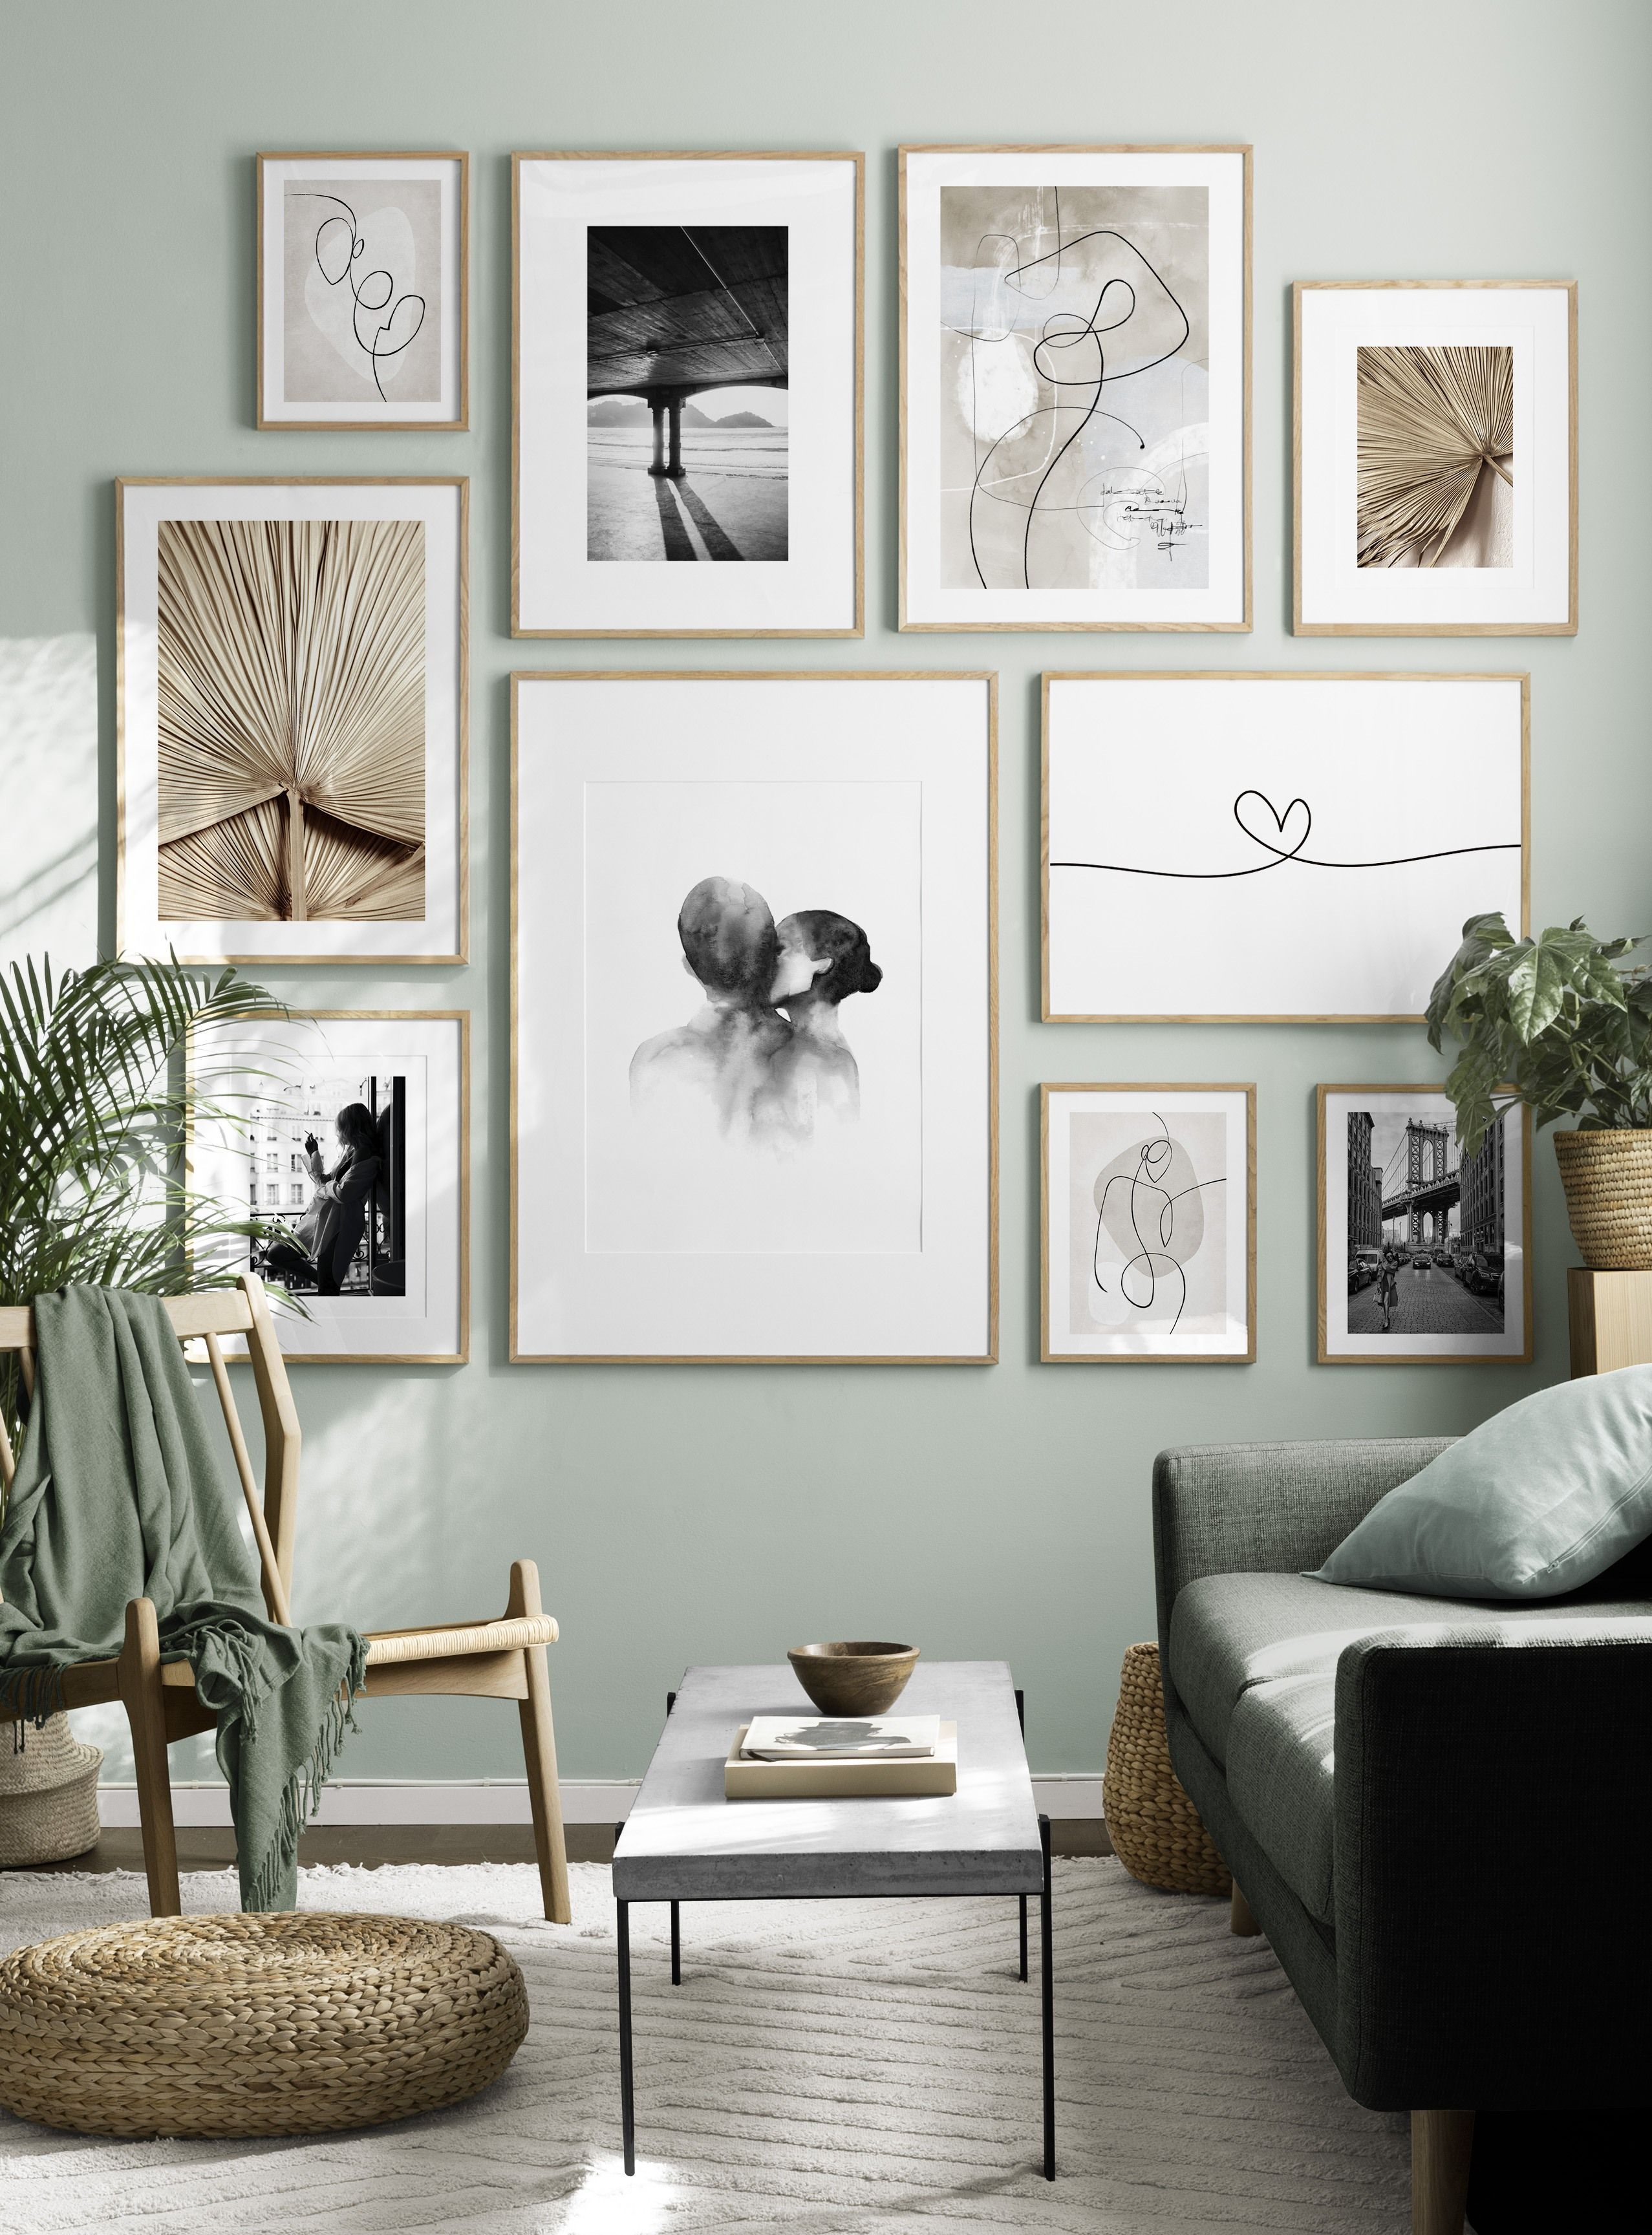 Gallery Wall For The Living Room Inspiration For The Living Room Desenio Picture Wall Living Room Gallery Wall Living Room Home Decor